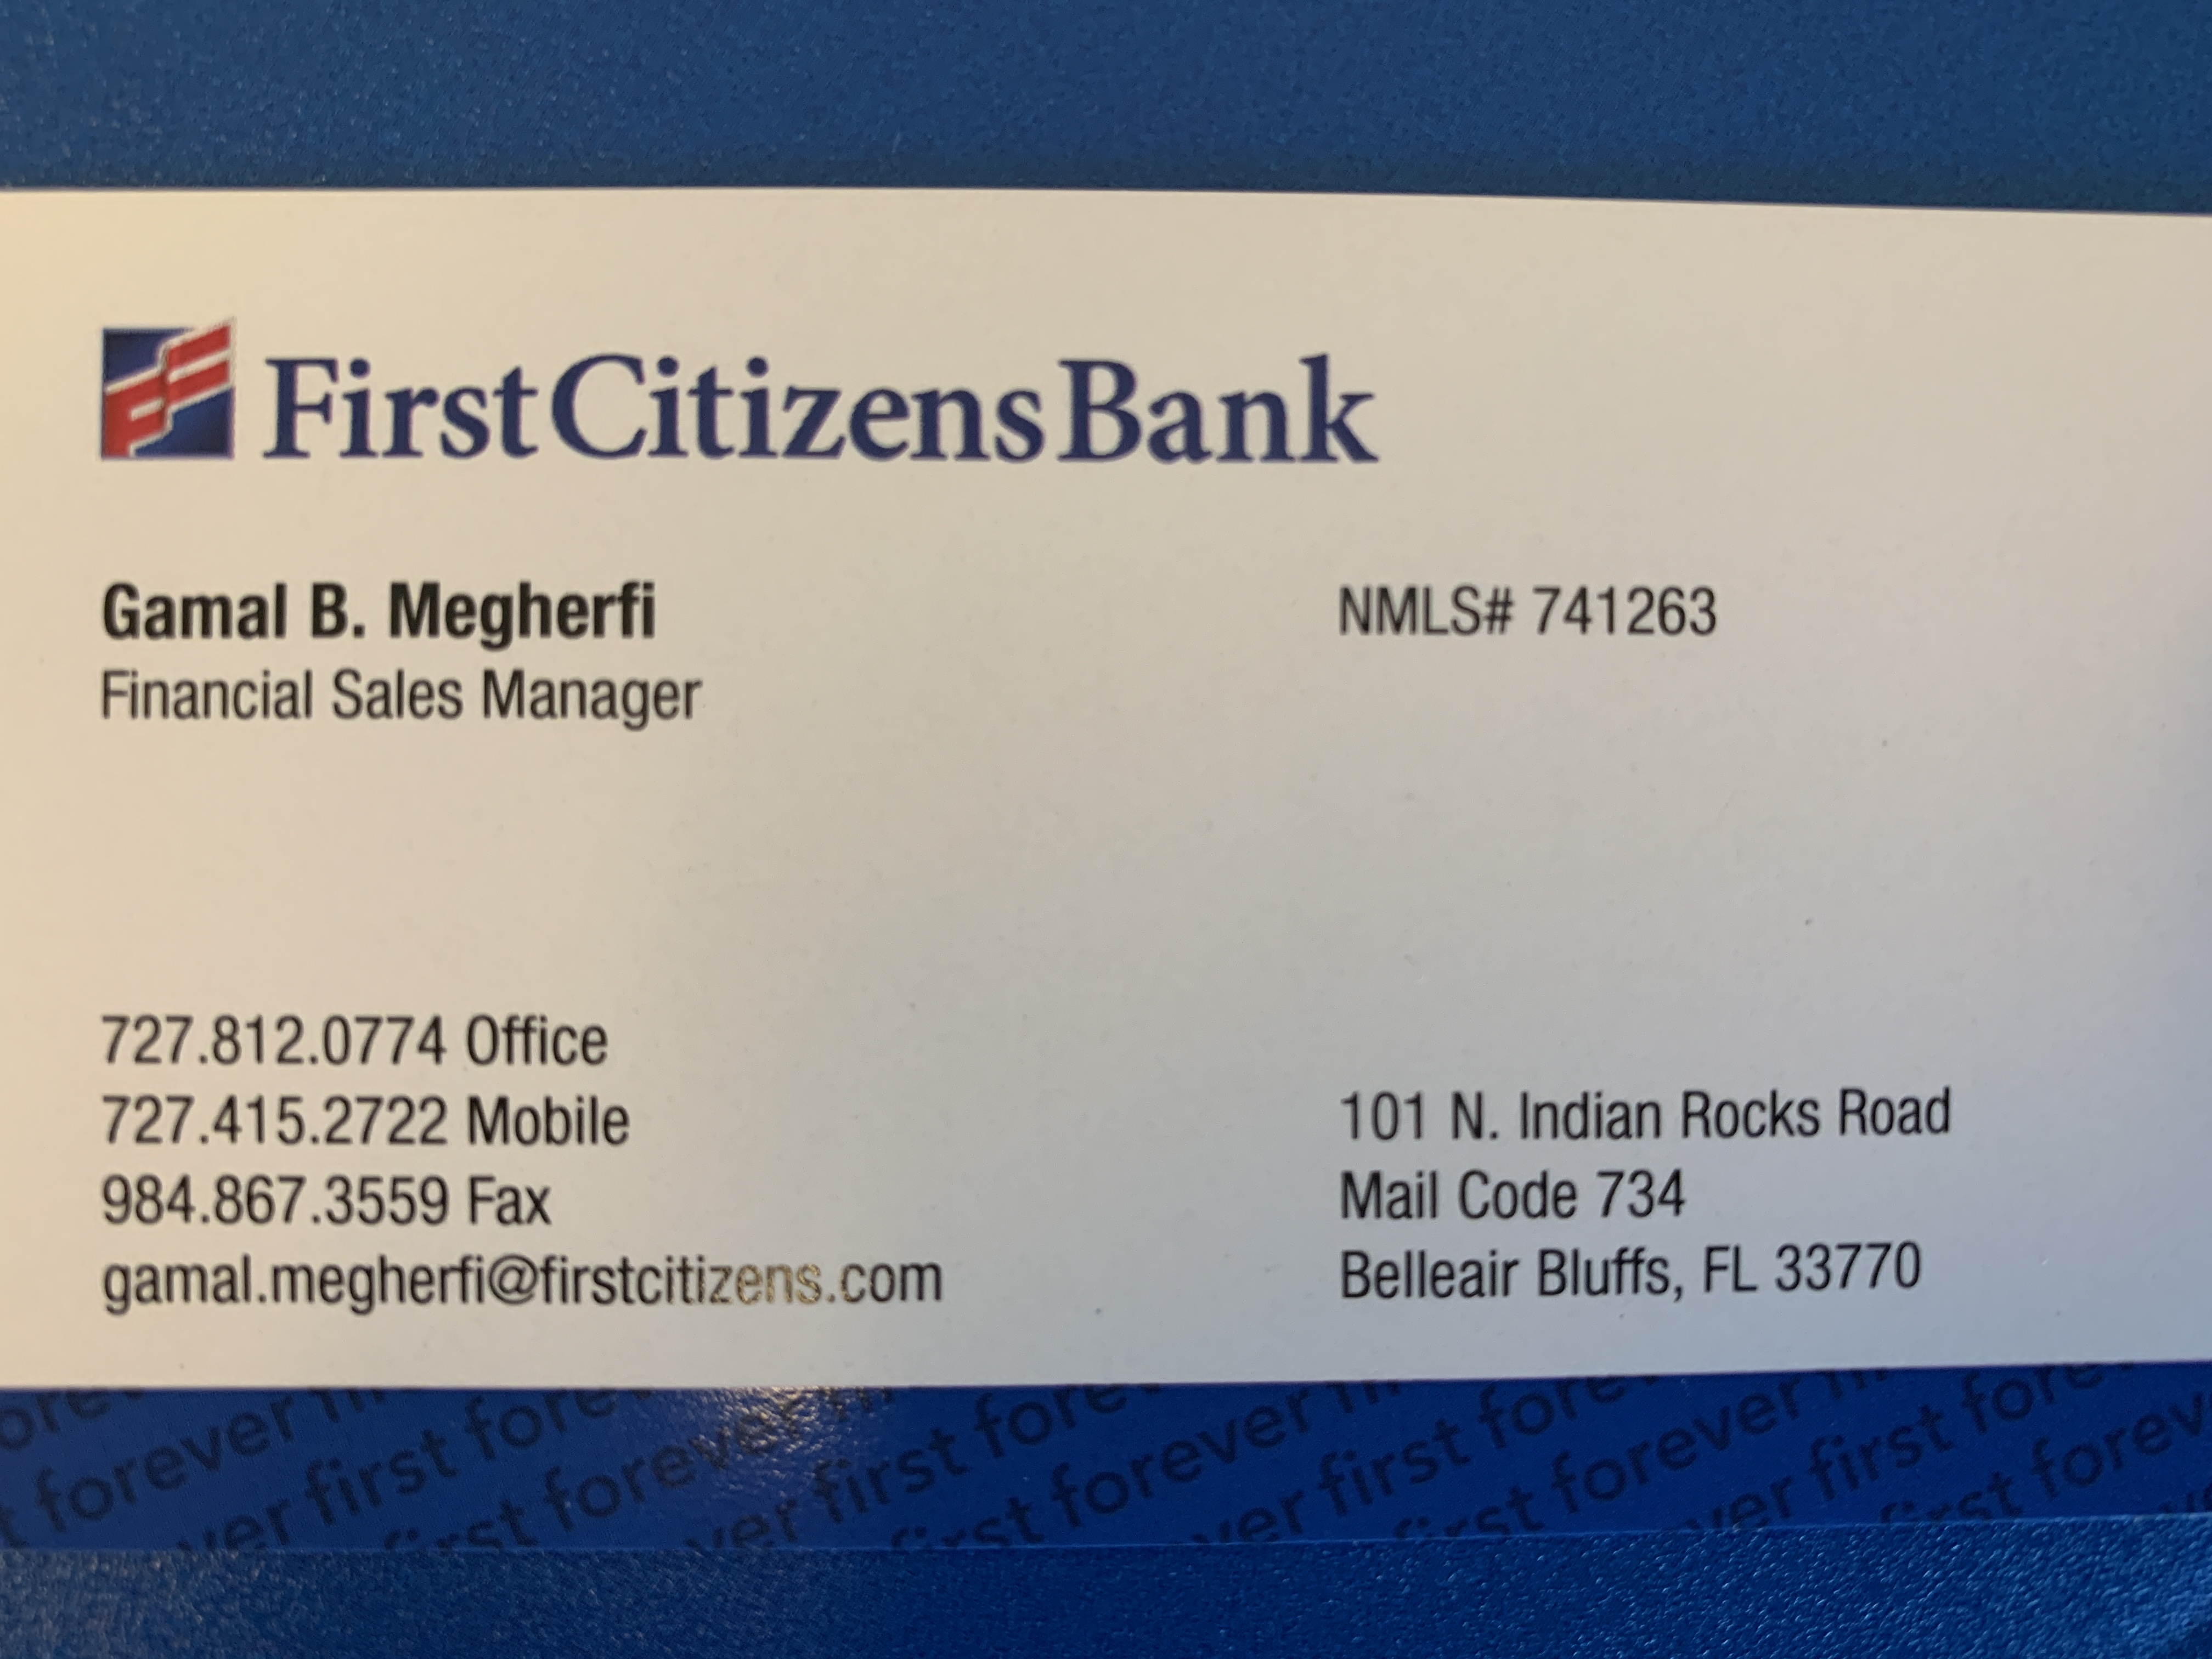 Business card of  First Citizens Bank